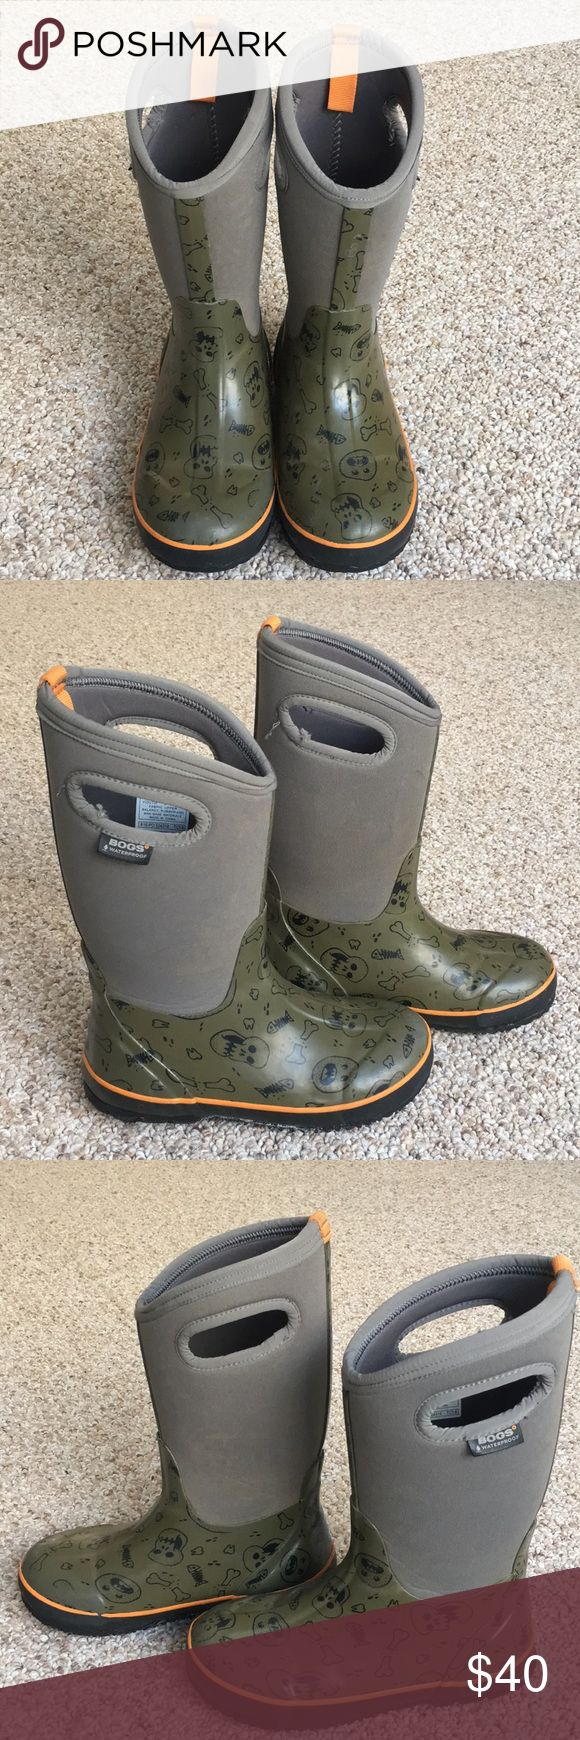 Boys BOGS Boys BOGS waterproof winter boots. Youth size 3. Normal wear and tear, Bogs Shoes Rain & Snow Boots